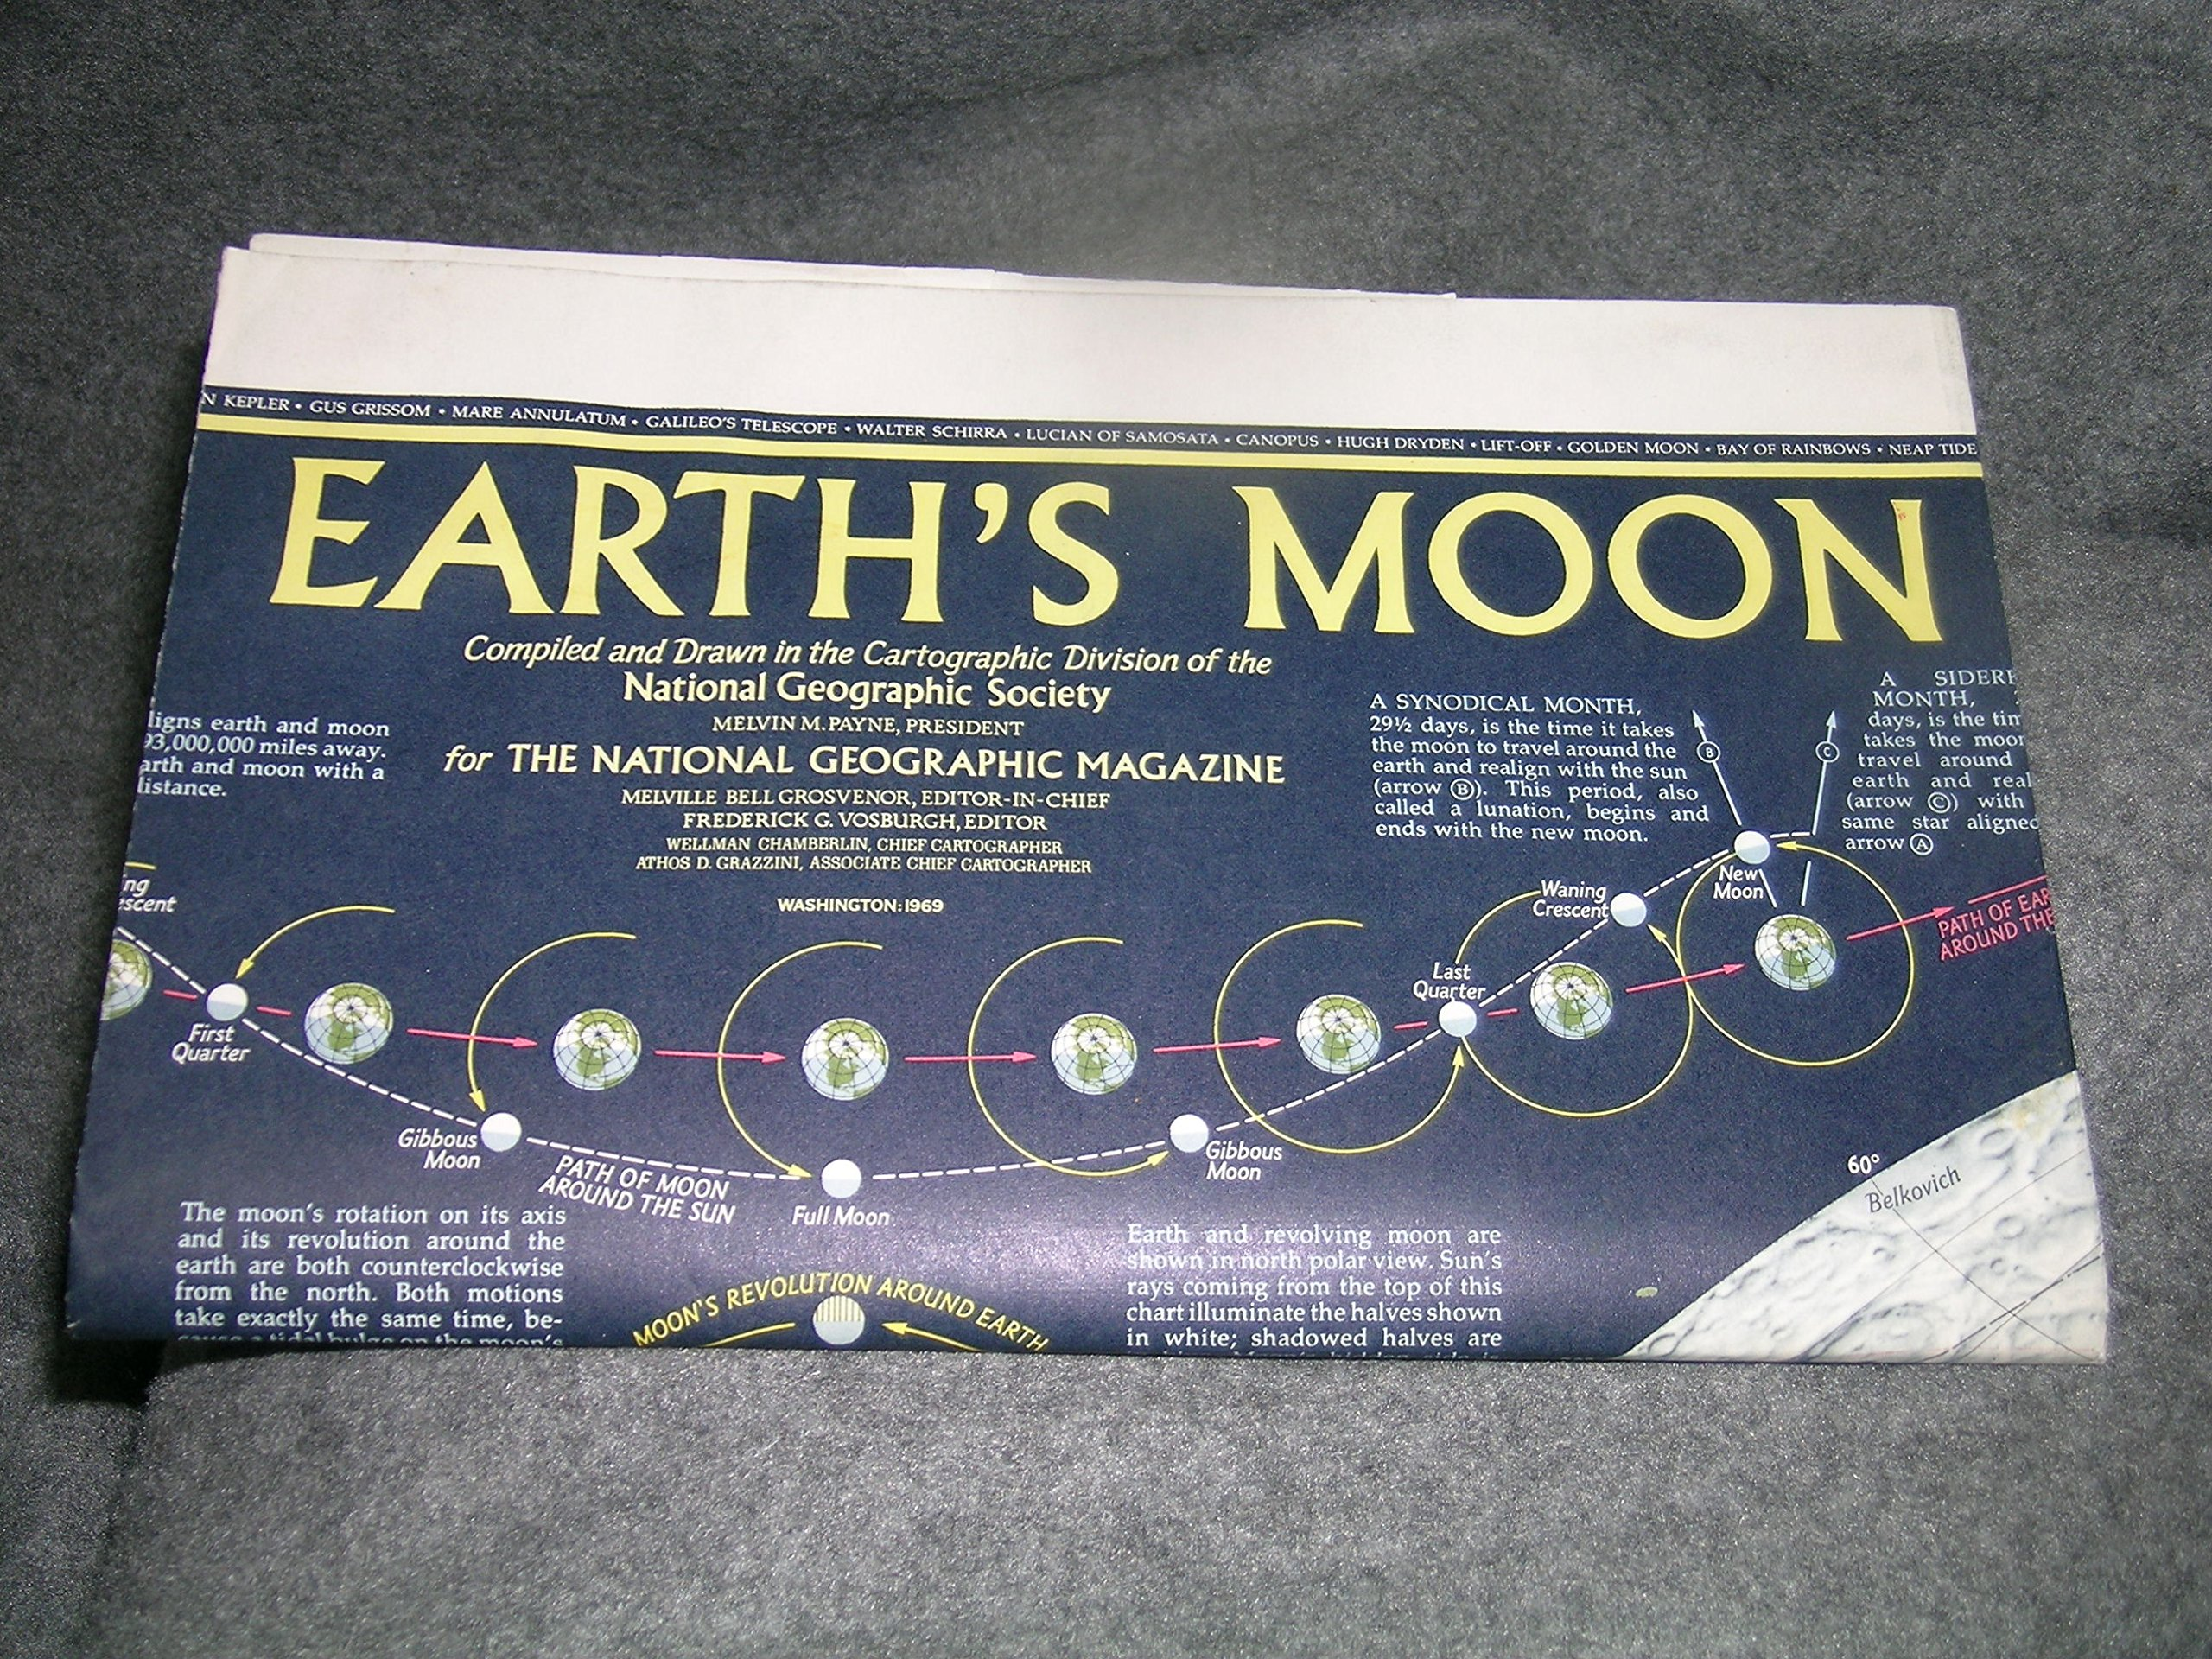 The Earth's Moon: National Geographic Society: Amazon.com: Books on the malay archipelago map, the plate tectonics map, neptune map, jupiter map, the explorers map, the multiverse map, zombie moon map, the oceans map, moon world map, the wolf map, inside out map, the flag map, the divergent map, moon orbit map, the mountains map, mars map, charles manson map, the animal map, the doom map, earth's moon crater map,